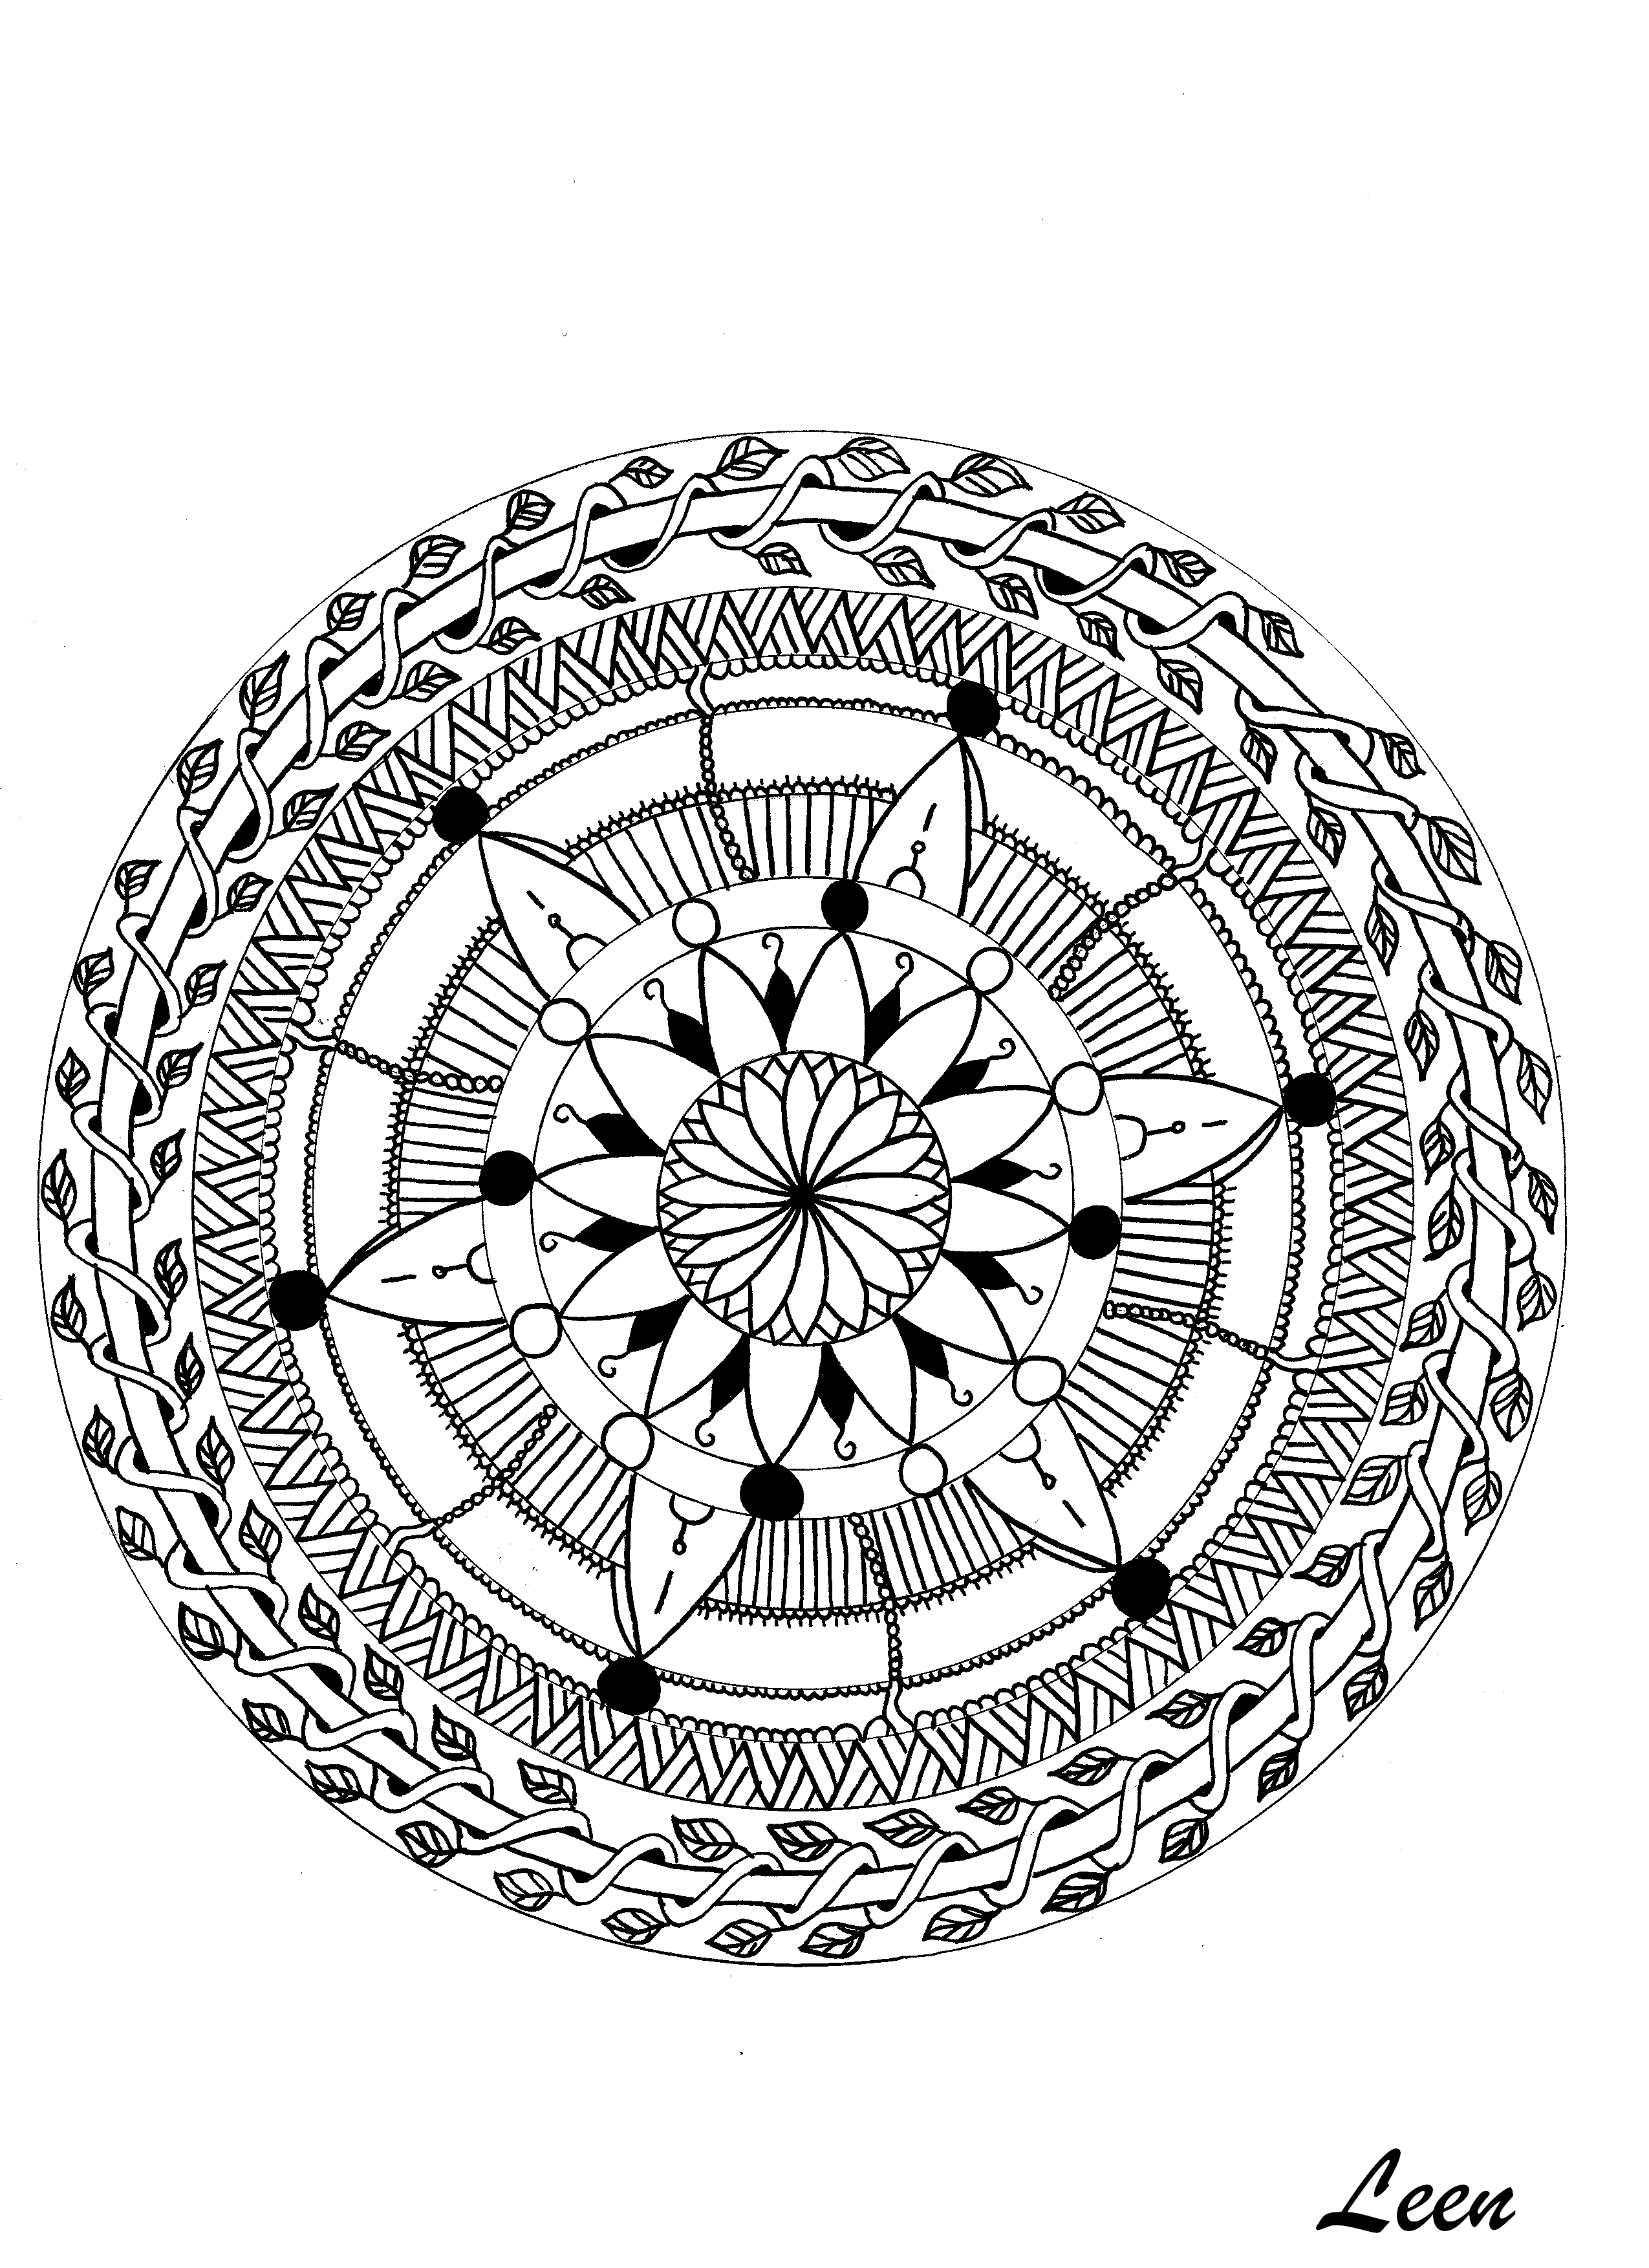 A luxuriant vegetation invades this magnificent Mandala, give it life without delay. Do whatever it takes to get rid of any distractions that may interfere with your coloring.